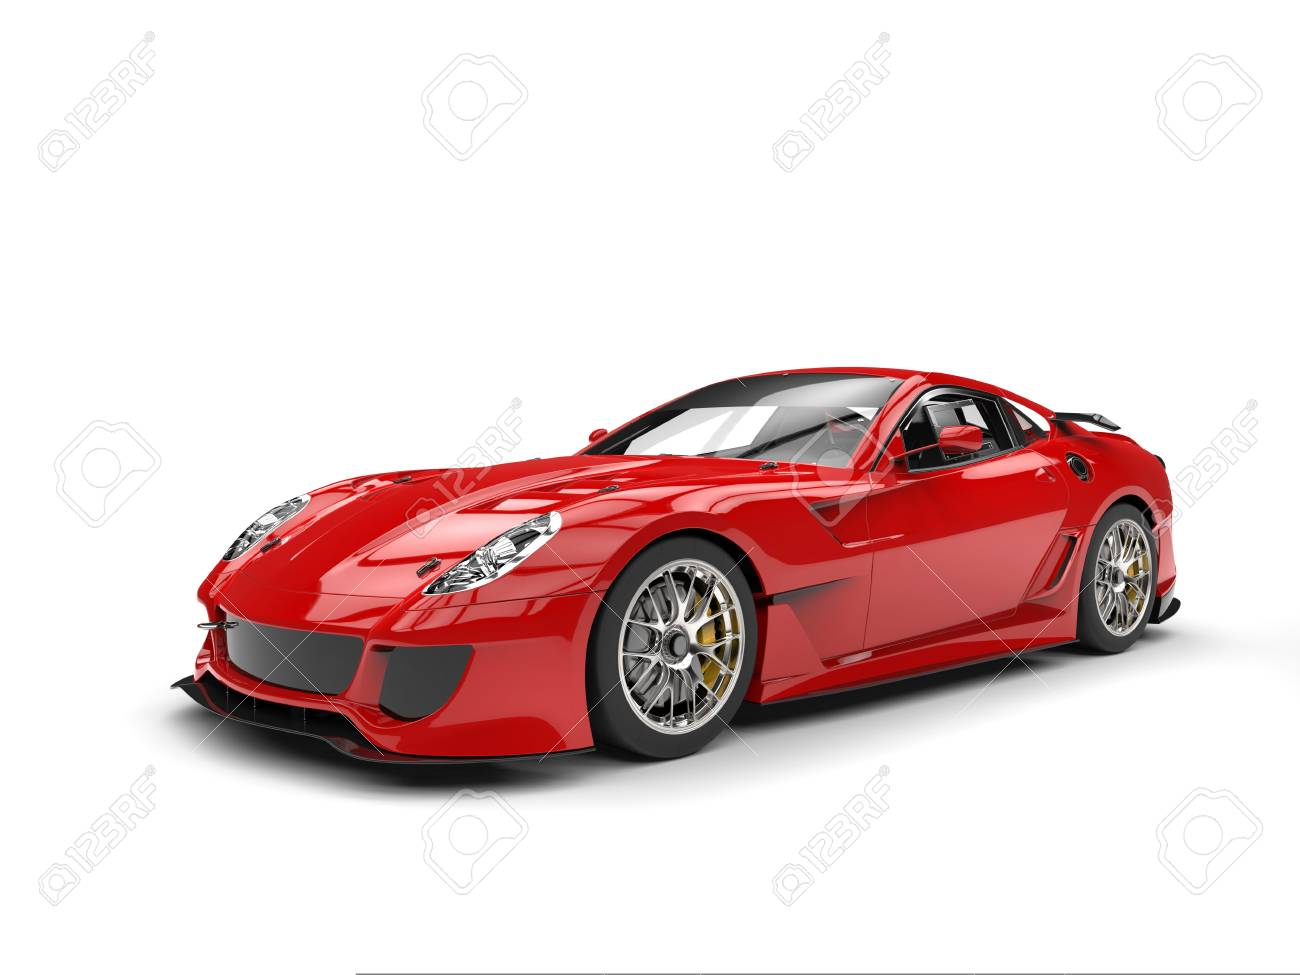 Fire Red Modern Fast Sports Car Stock Photo Picture And Royalty